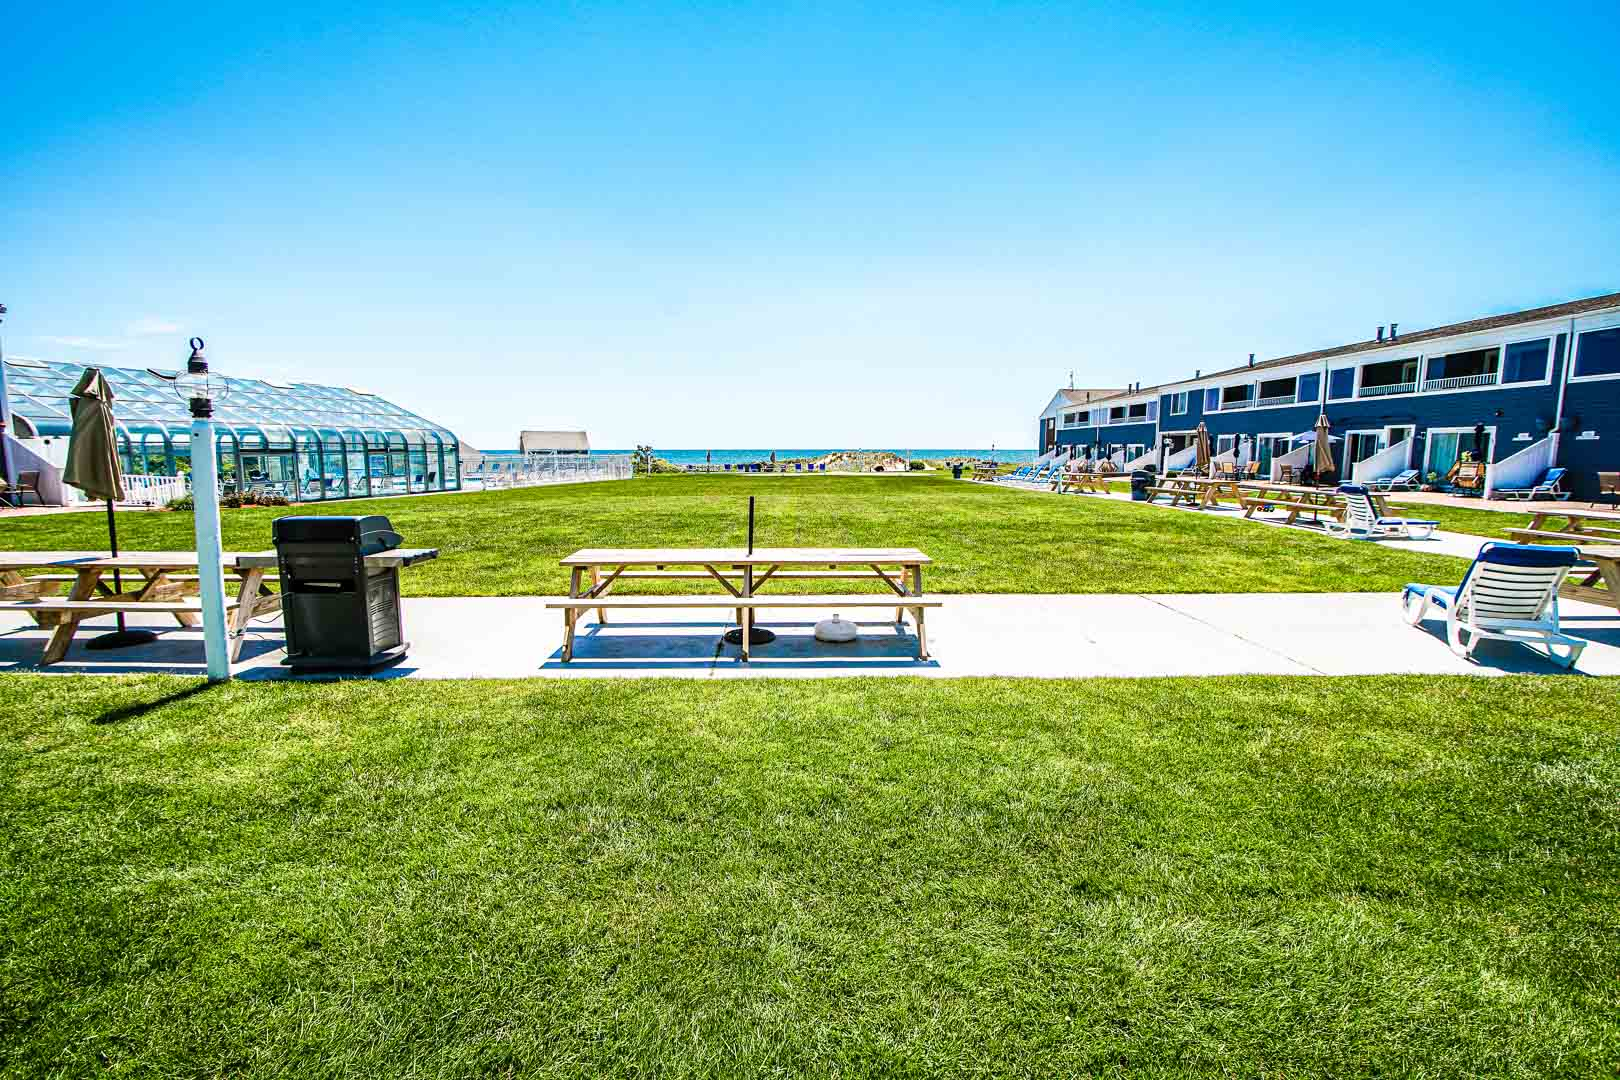 BBQ grills available in the patio area at VRI's Edgewater Beach Resort in Massachusetts.